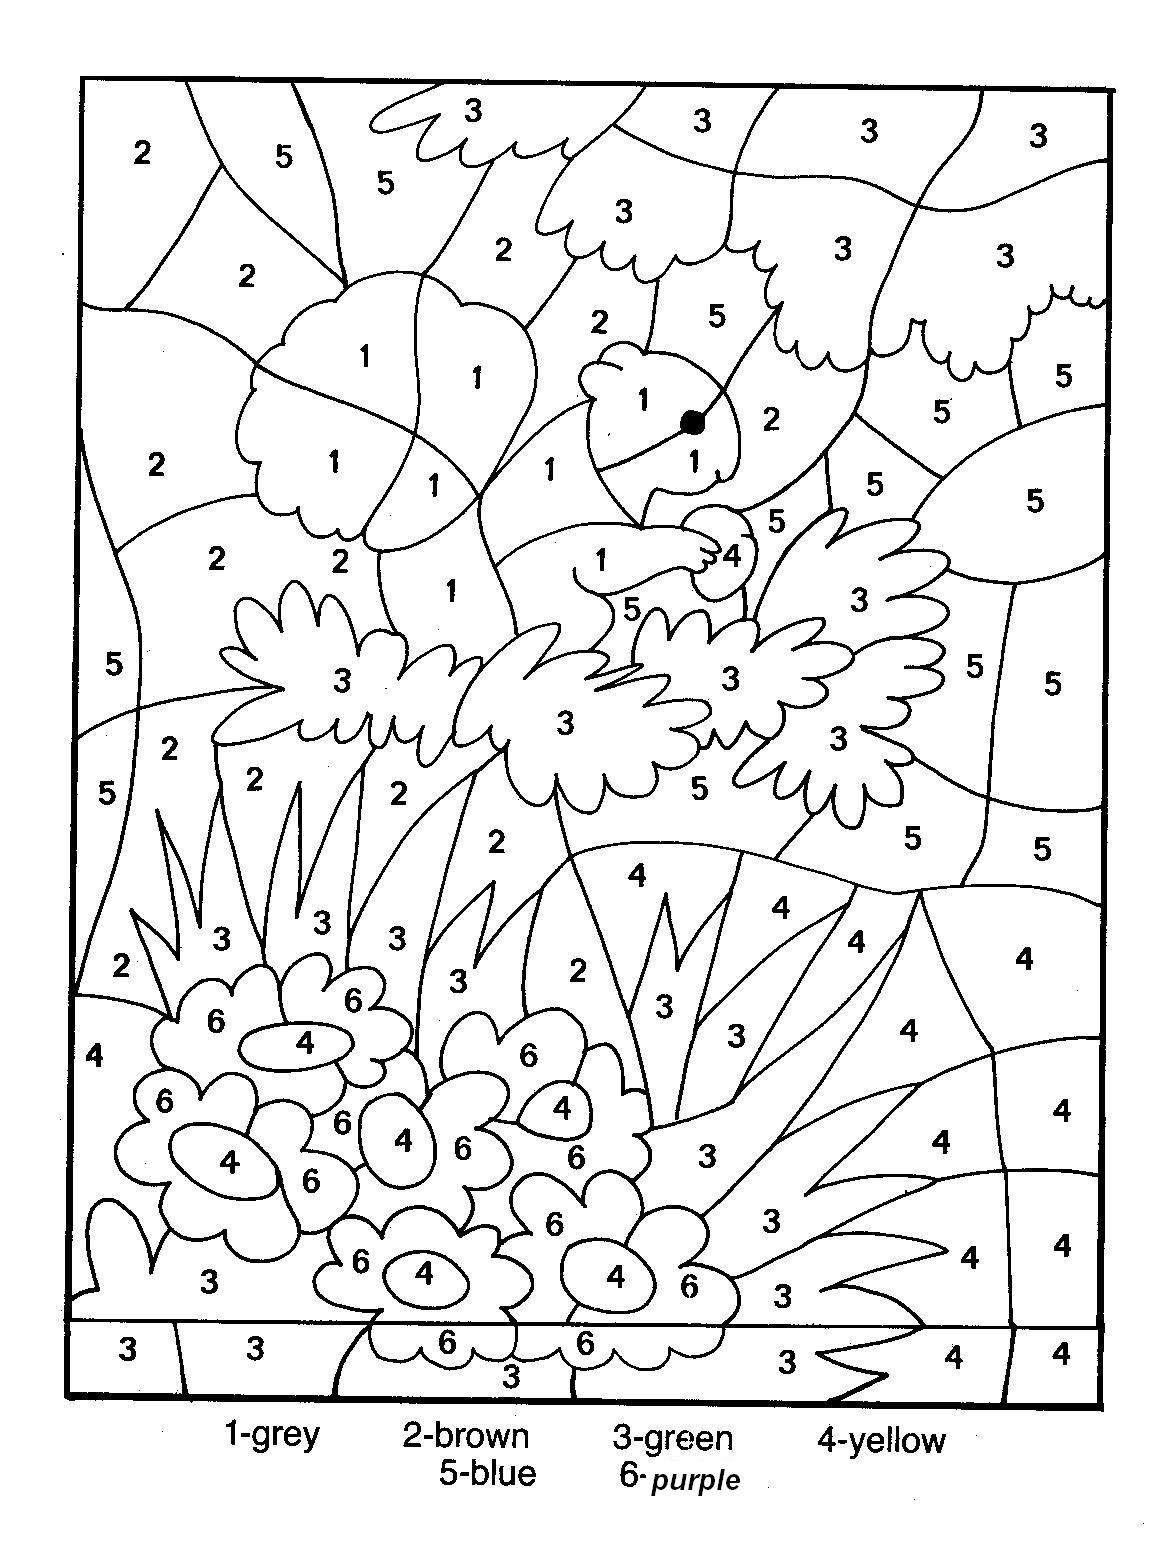 Coloring pages by numbers for kids - Printable Color By Number For Adults Color By Number Coloring Pages For Kids 5